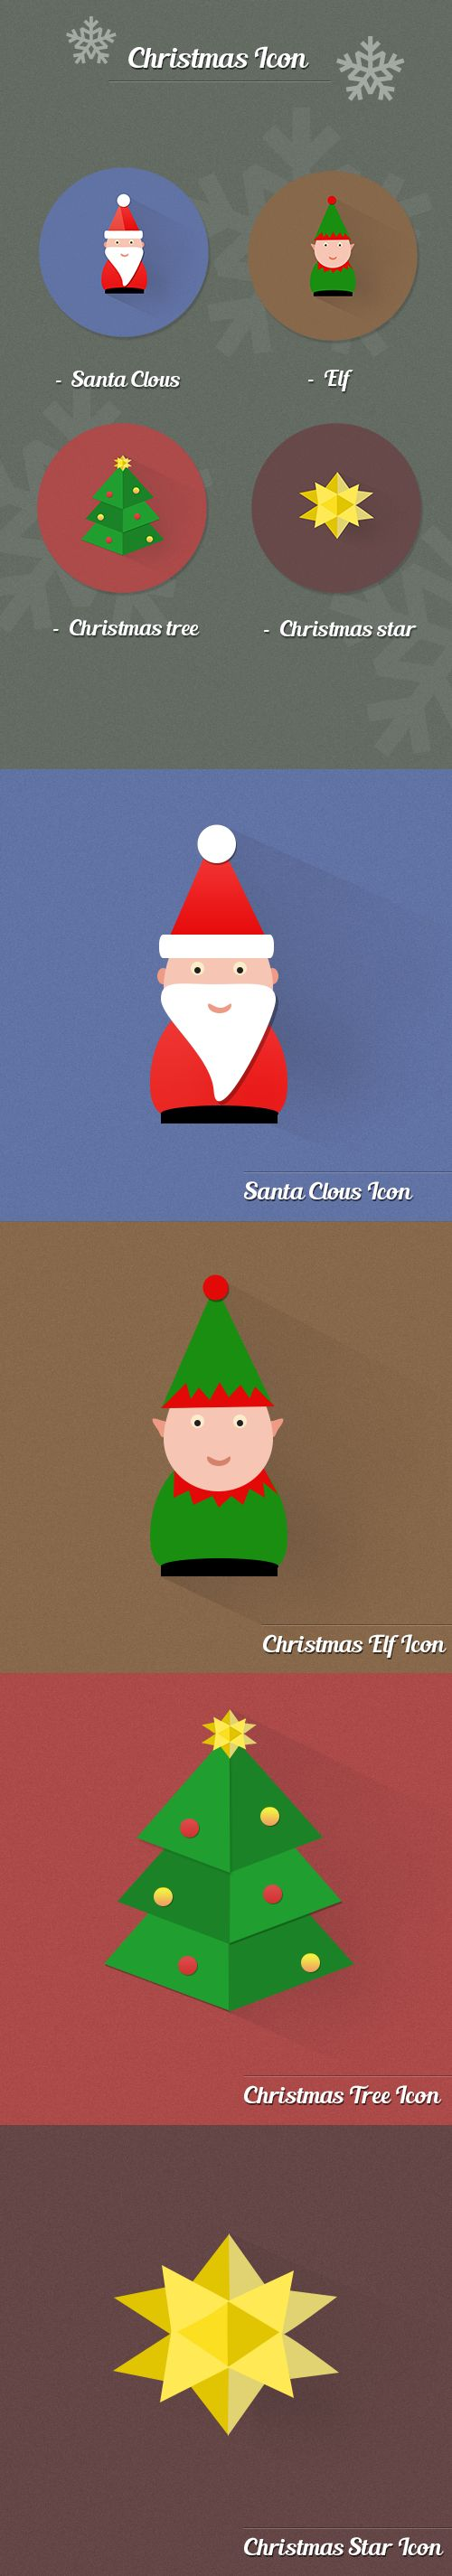 Christmas Icon (Free) on Behance